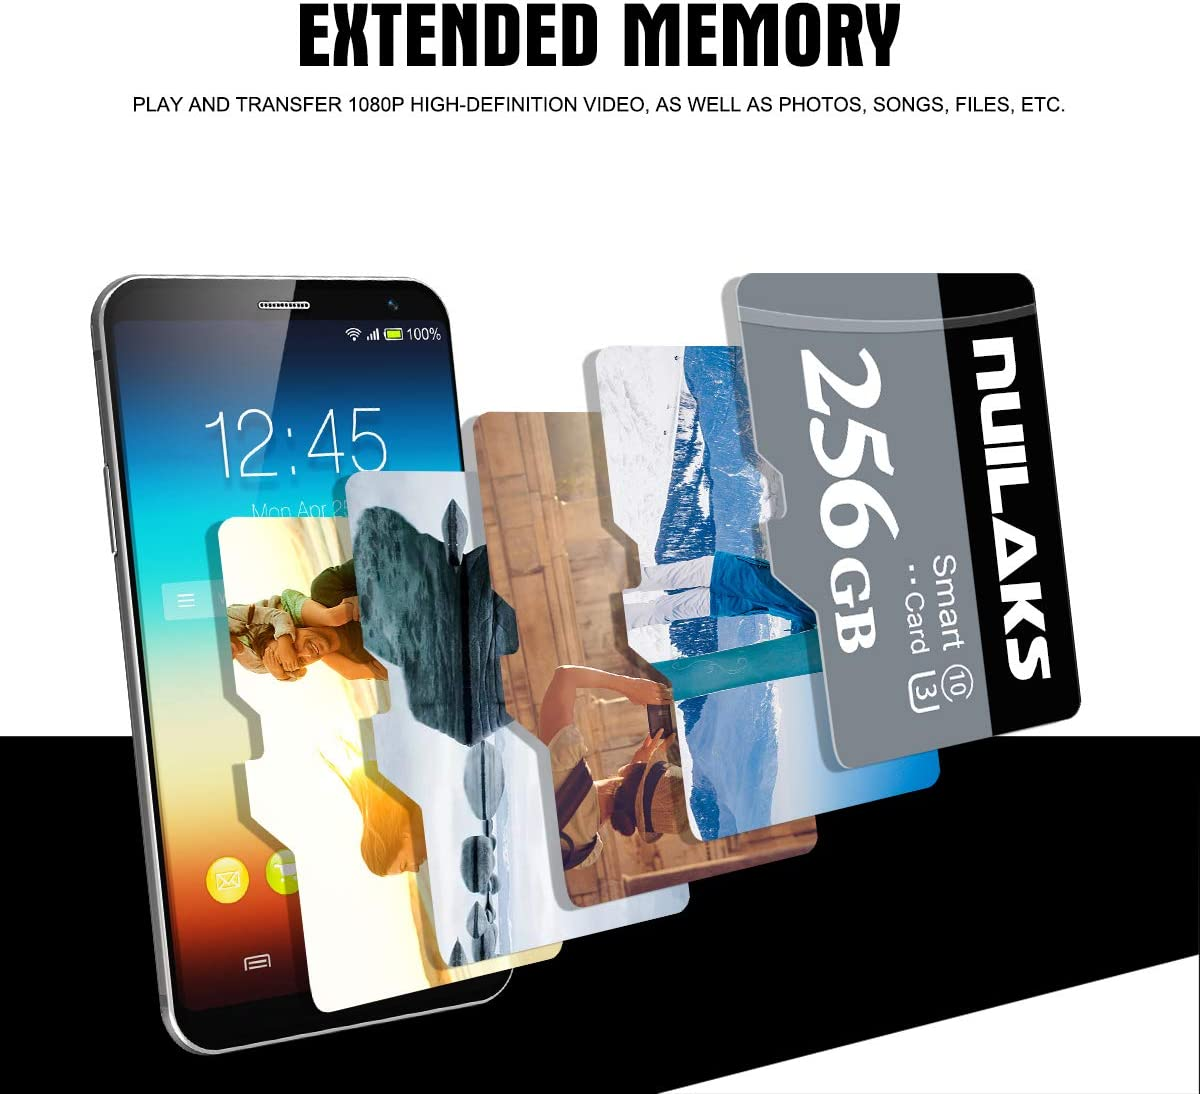 256GB Micro SD Card High Speed Class 10 SDXC with SD Adapter Designed for Android Smartphones, Tablets and Other Compatible Devices